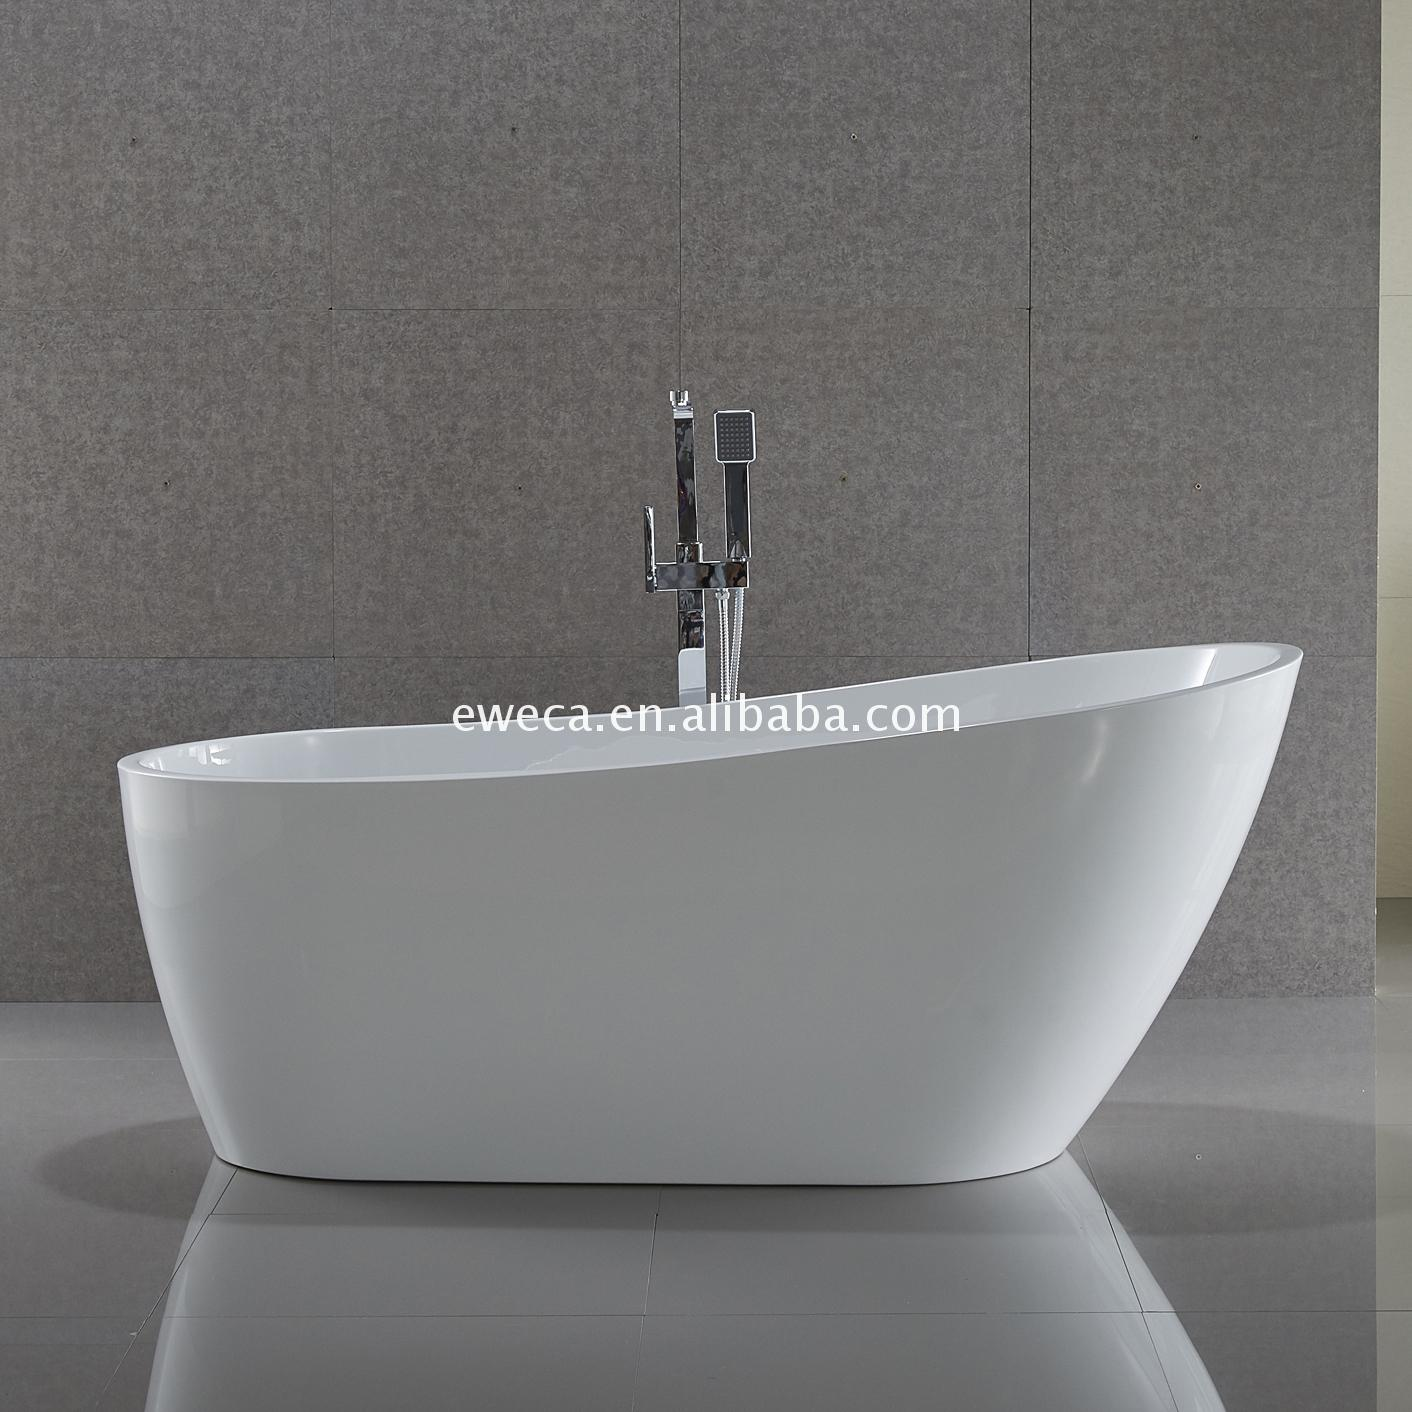 Stainless Steel Dog Tub Wholesale, Steel Dog Suppliers - Alibaba